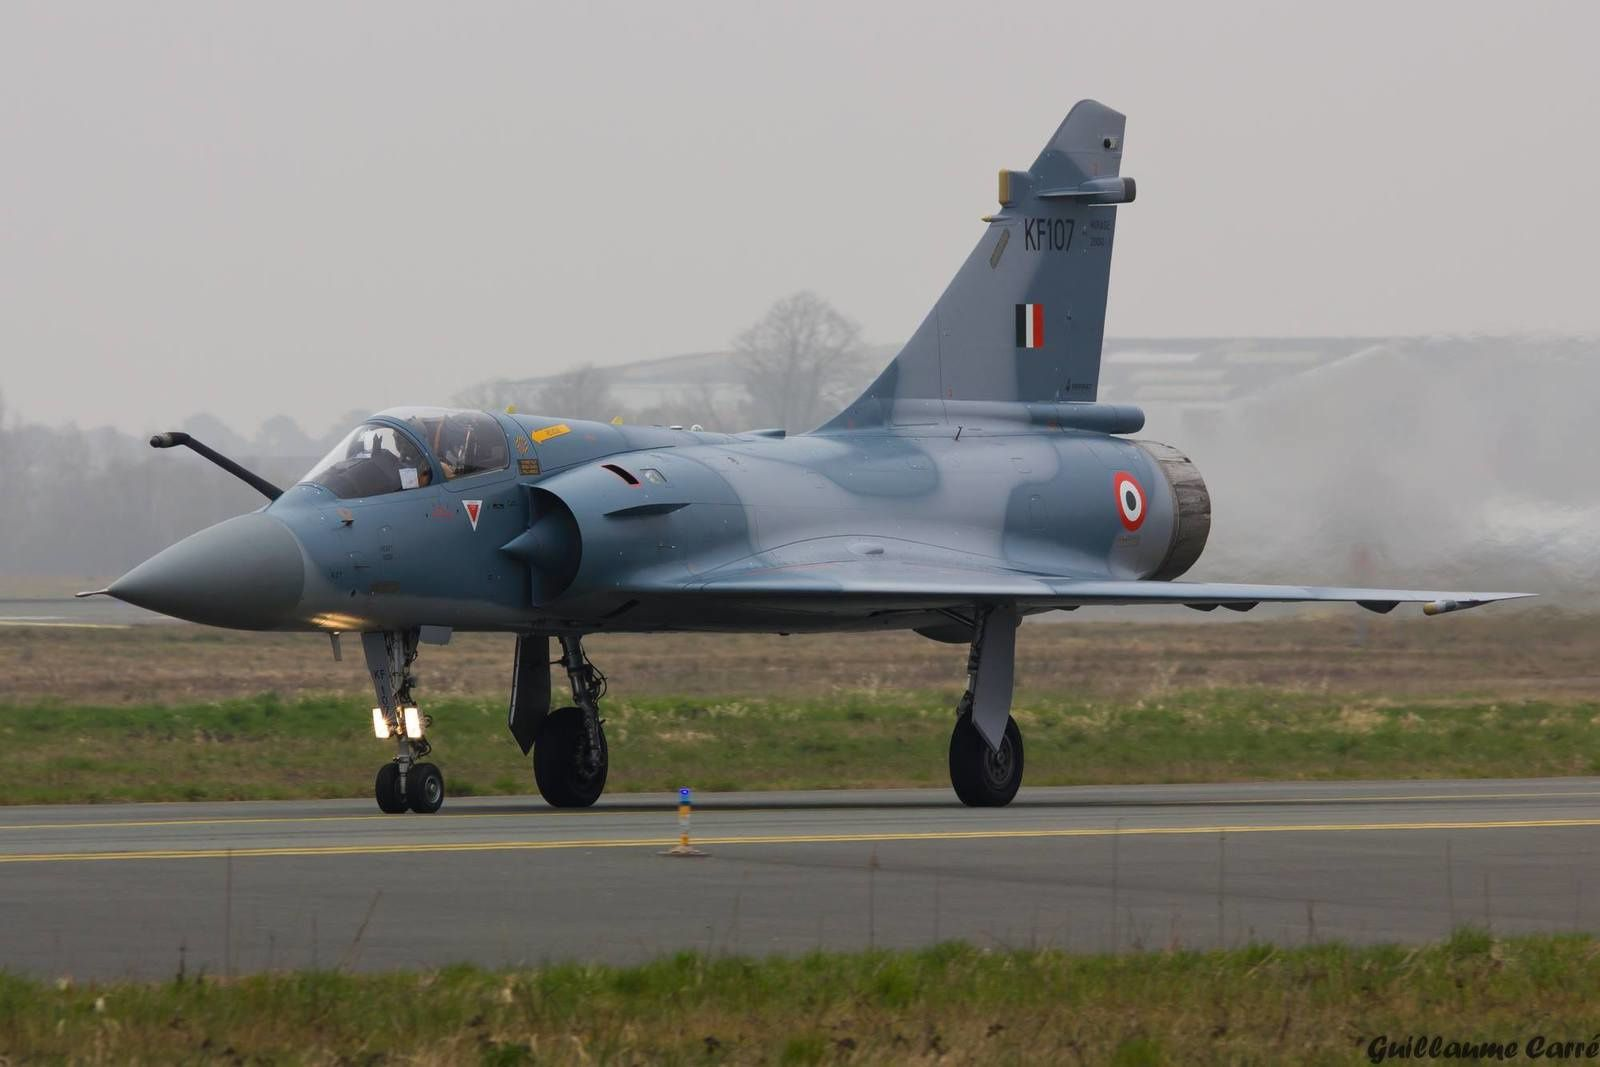 PHOTOS : Un Mirage 2000H indien modernisé à Bordeaux-Mérignac